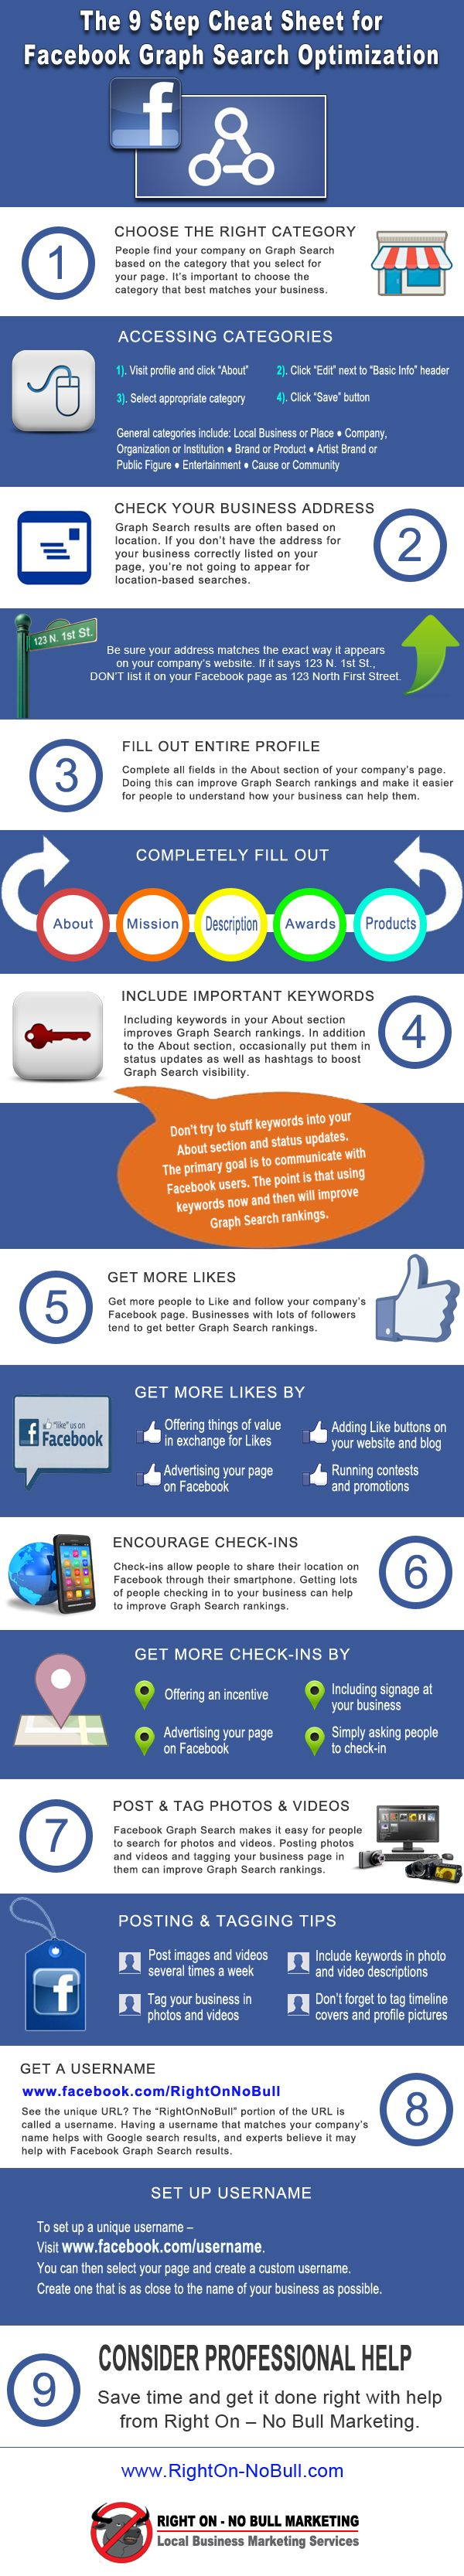 Optimizing your small business page for Facebook Graph Search | righton-nobull.com